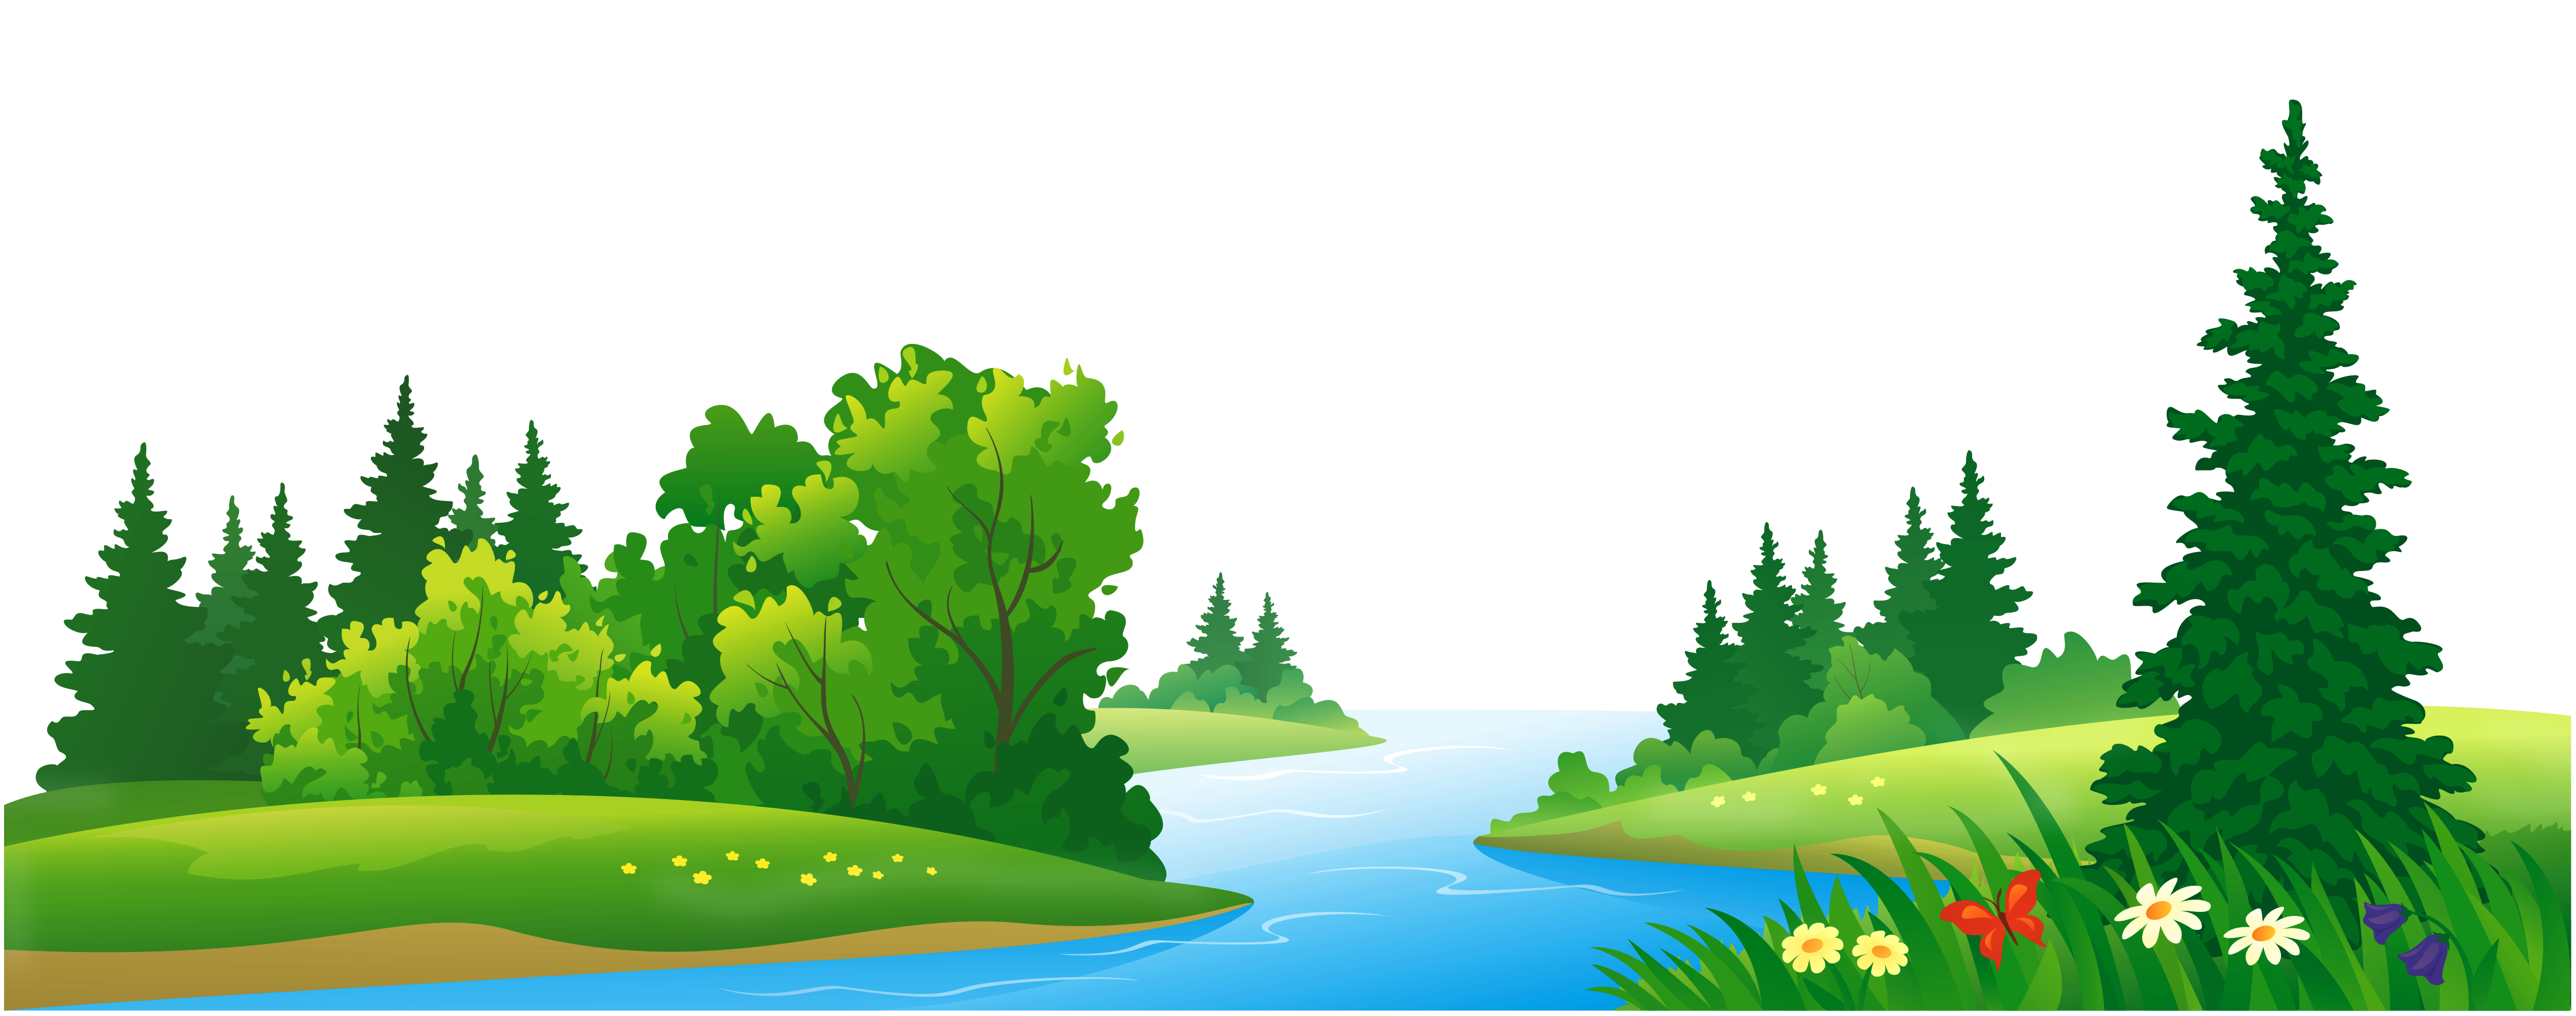 Forest clipart #4, Download drawings